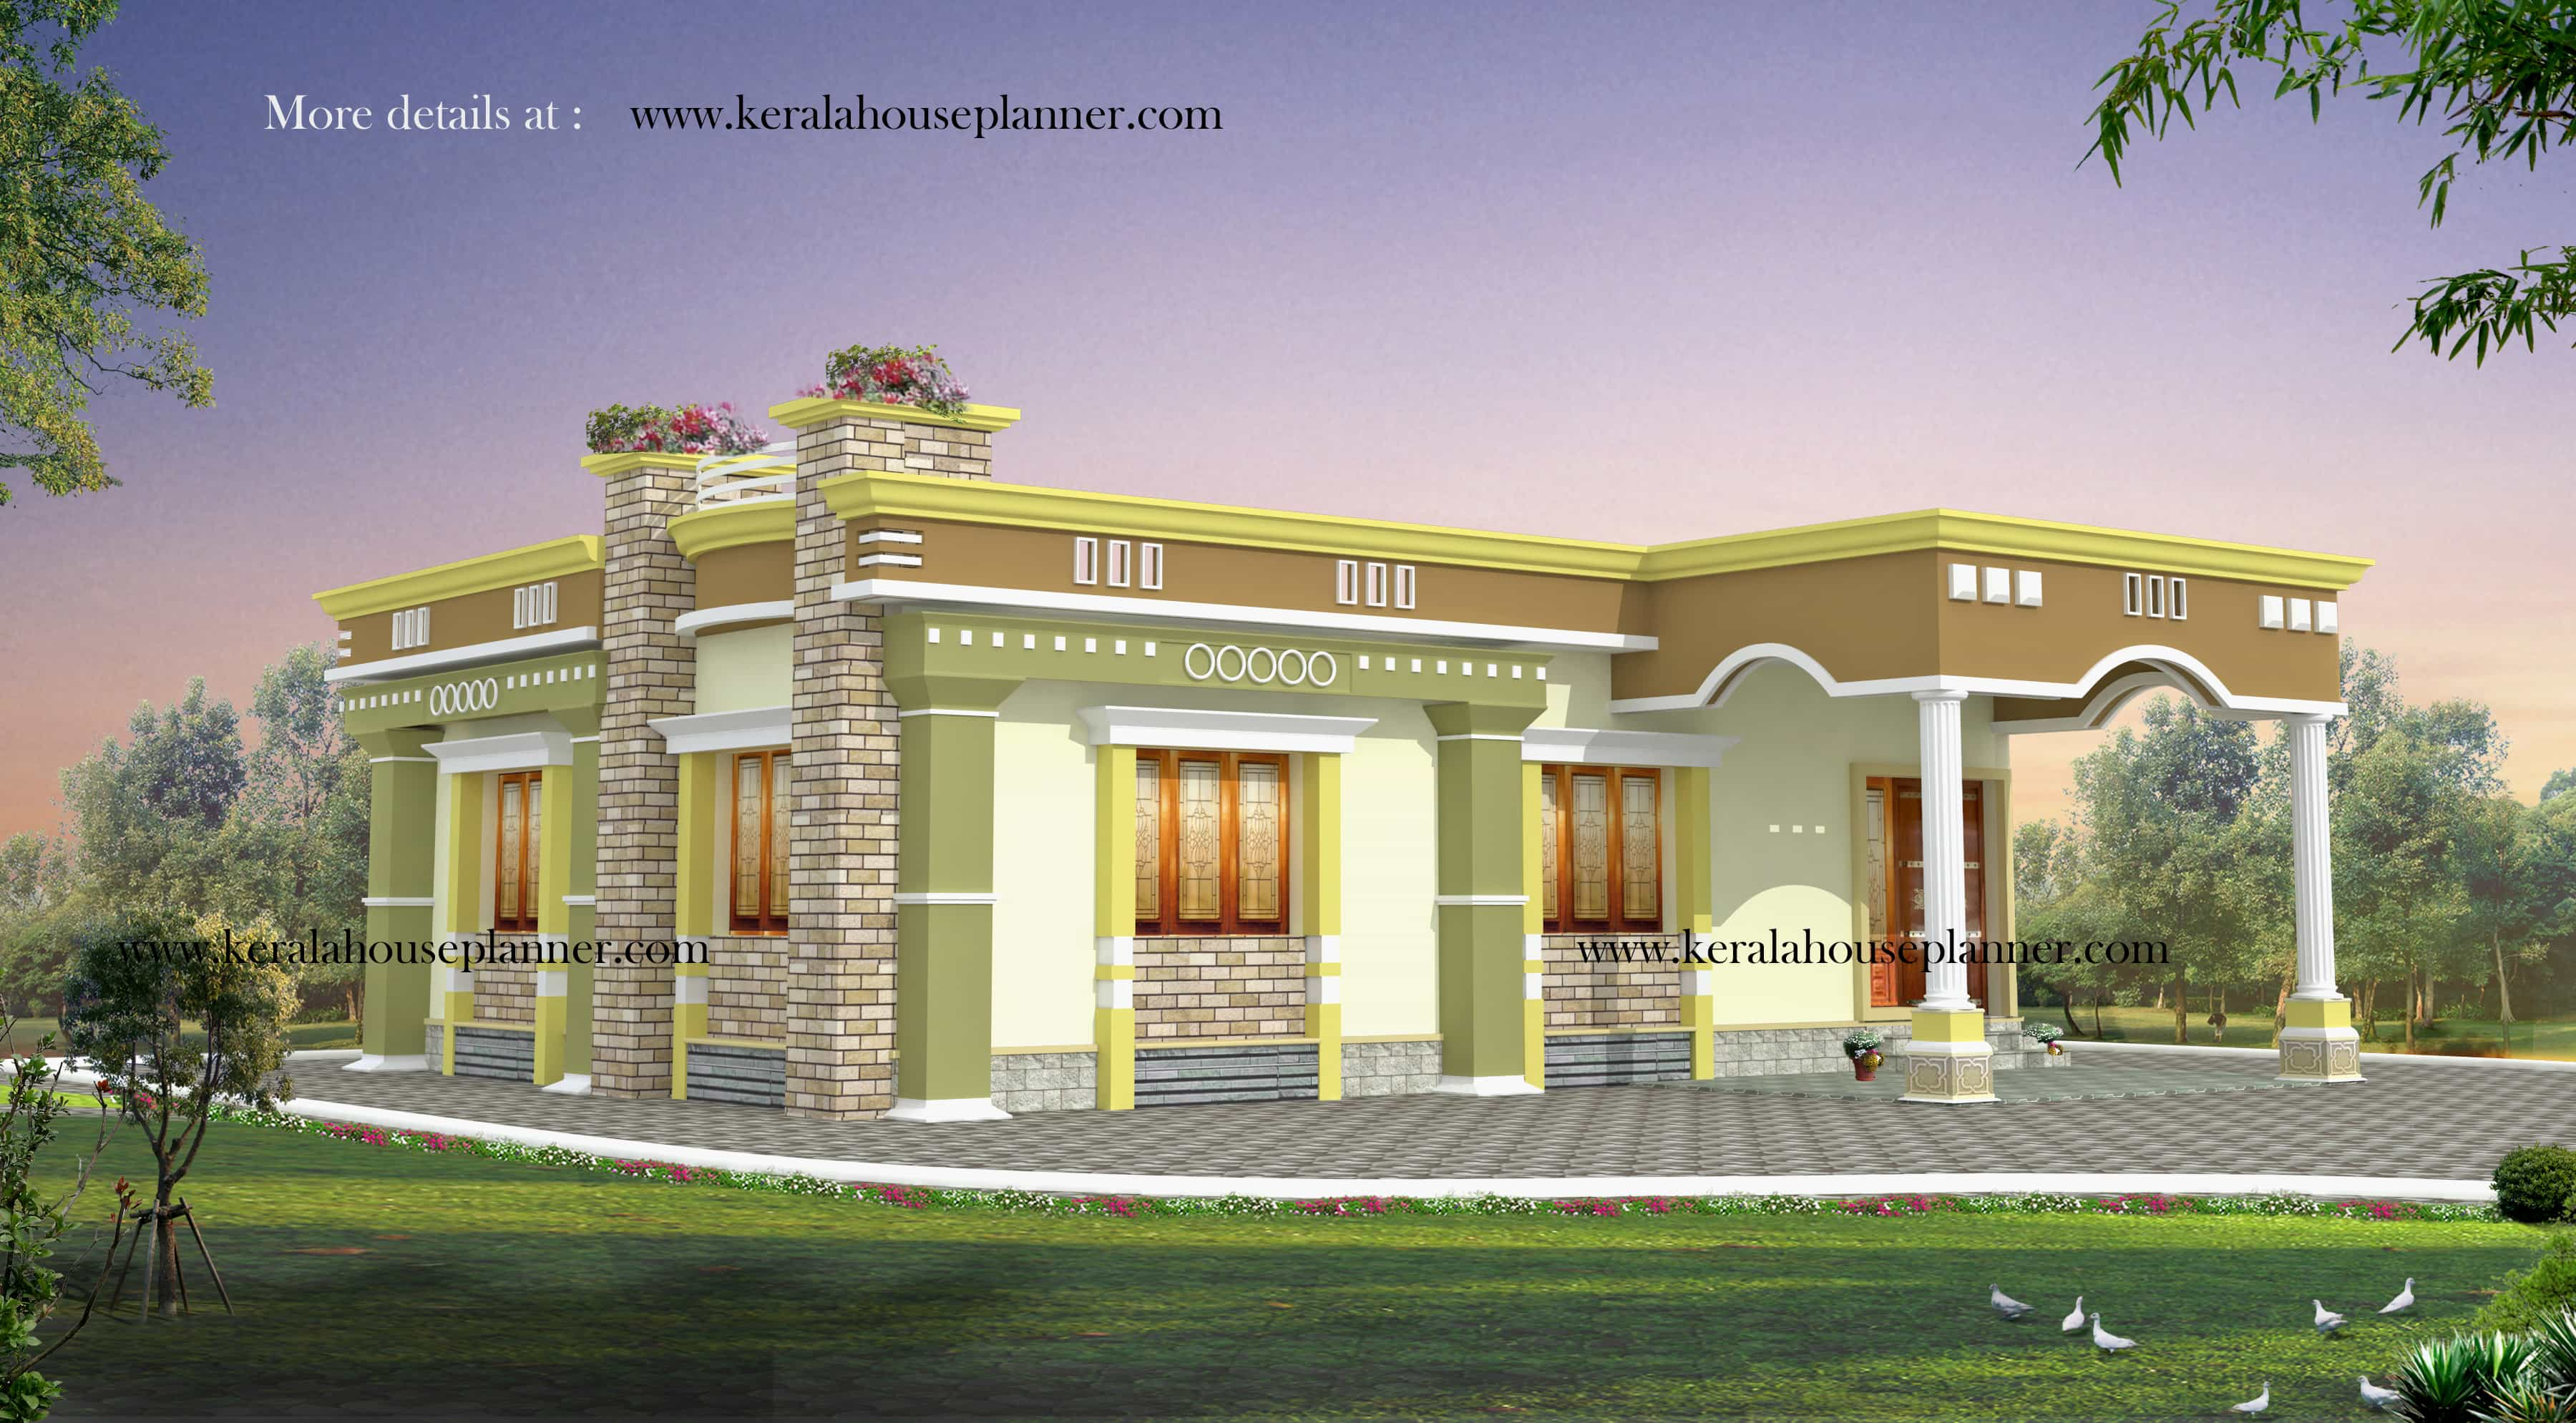 Kerala house plans 1200 sq ft with photos khp for House lans